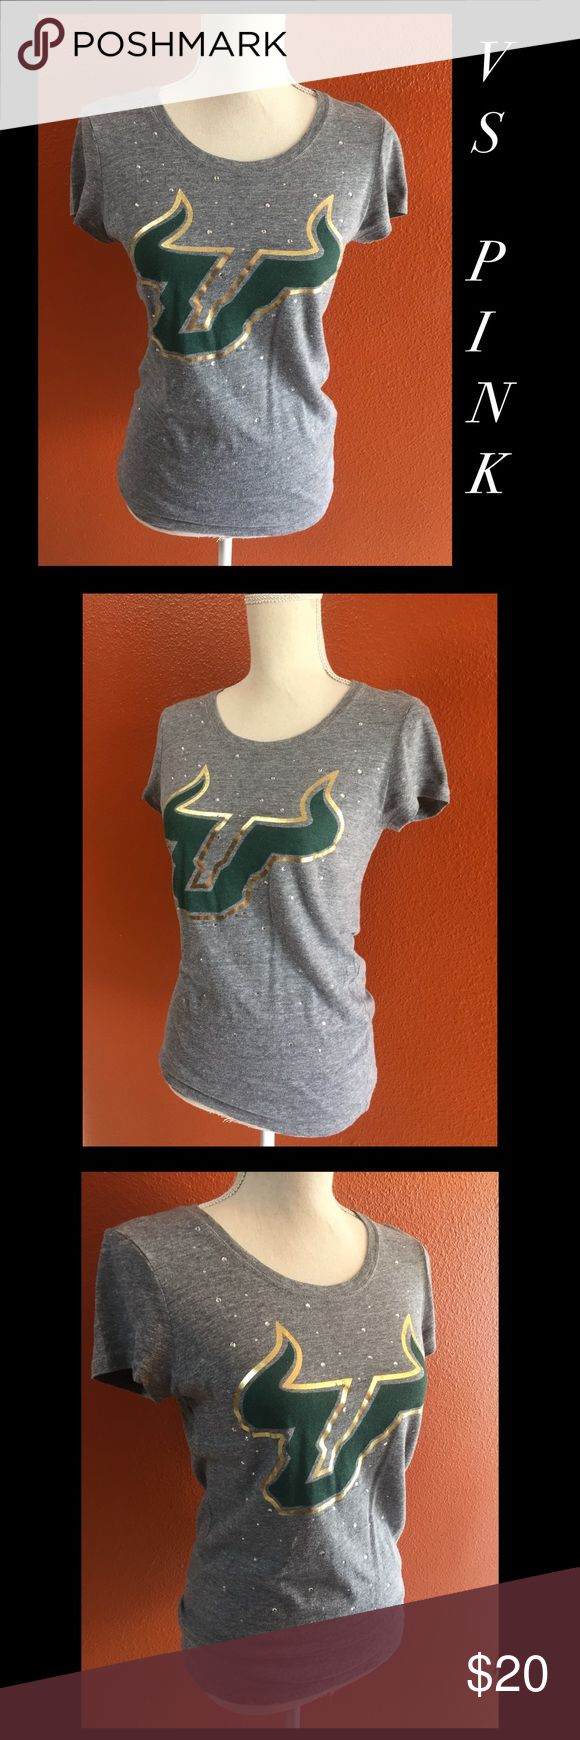 Victoria's Secret Pink USF Bulls Shirt. Size M. VS Pink USF Bulls t shirt. Fitted cut. Cute little rhinestones. It's ore loved and has some slight lettering imperfections by still really cute. Gold lettering and dog logo on back. Go Bulls!  University of South Tampa PINK Victoria's Secret Tops Tees - Short Sleeve